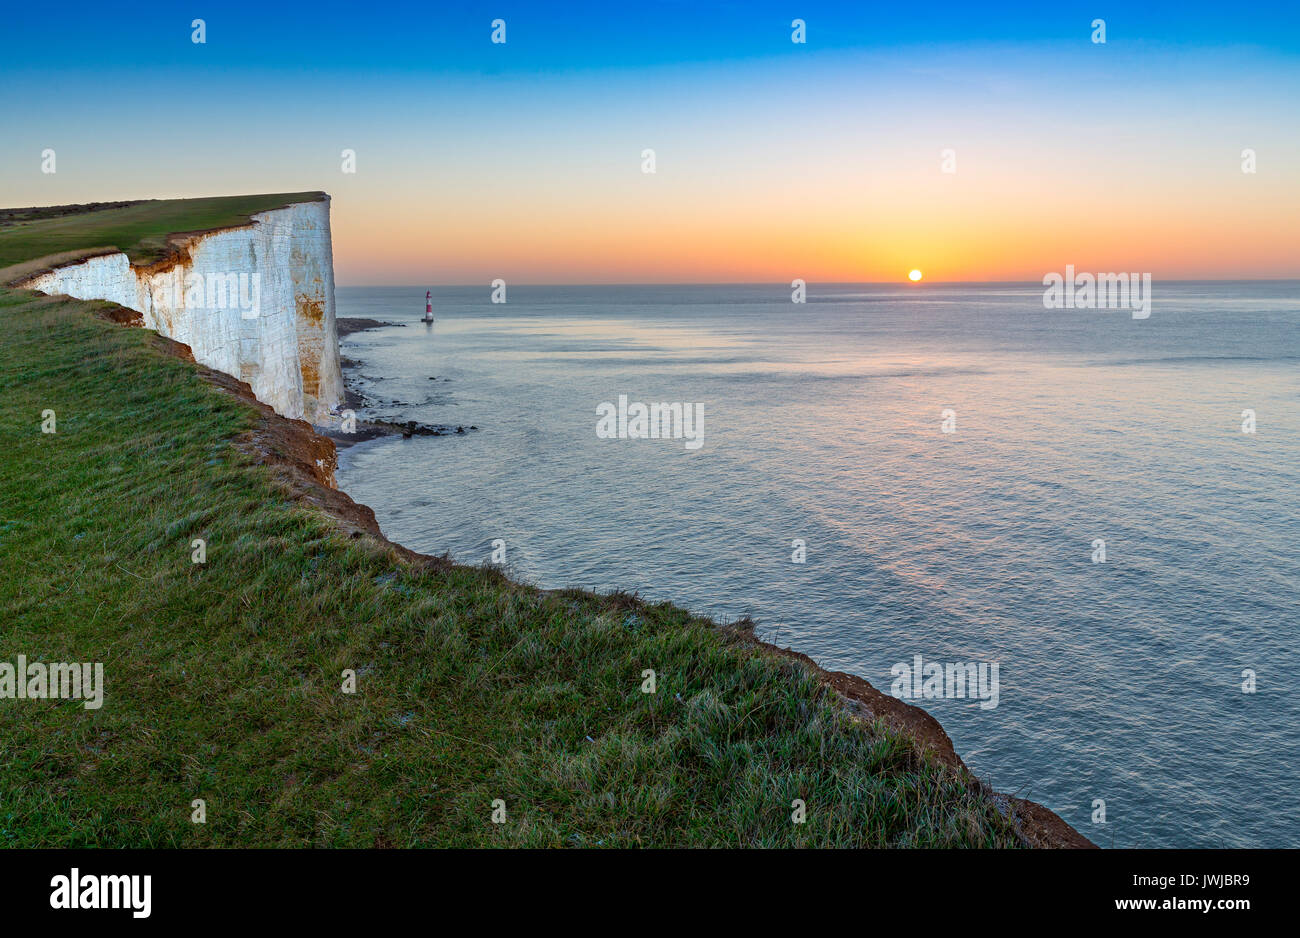 Beachy Head Light House and Chalk Cliffs at Sunrise, Sussex, England, UK - Stock Image